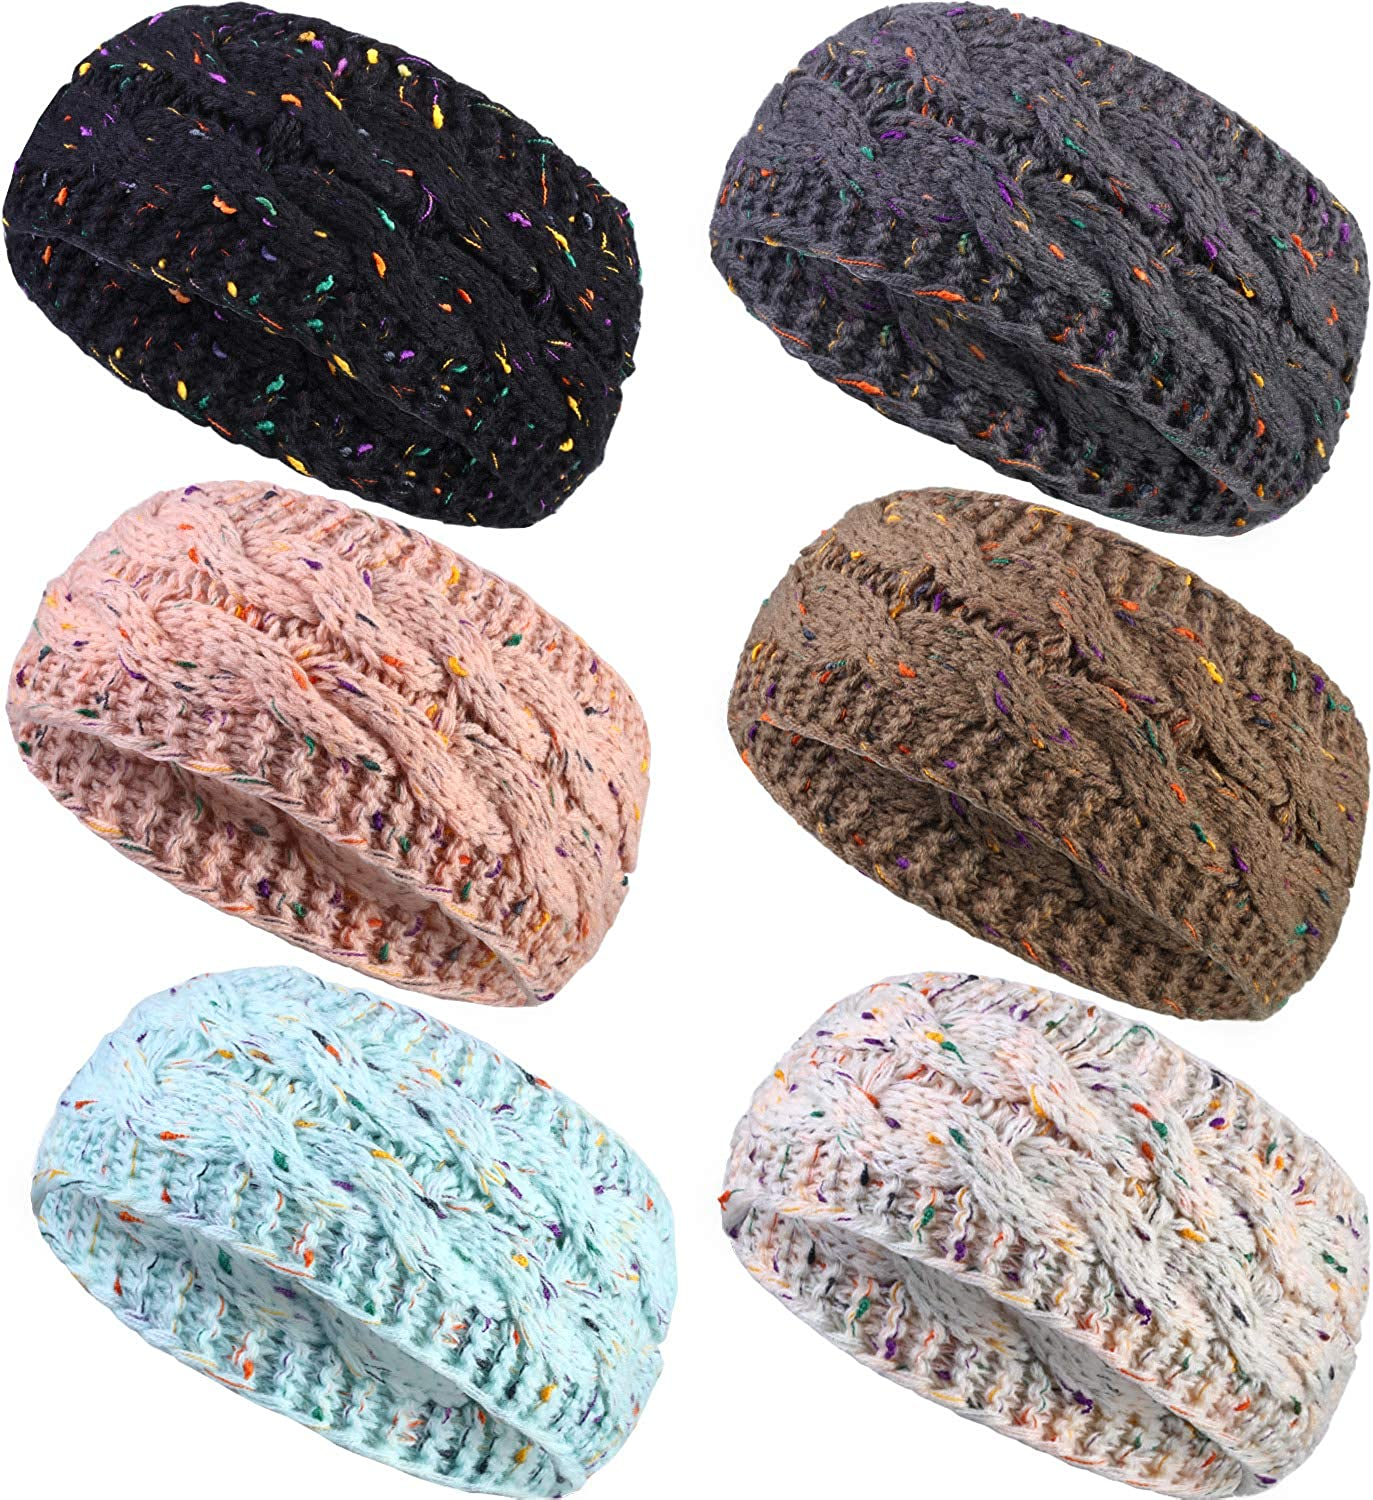 6 Pieces Winter Headband Ear Warmer Warm Cable Knitted Thick Head Wrap for Women Girls Gift